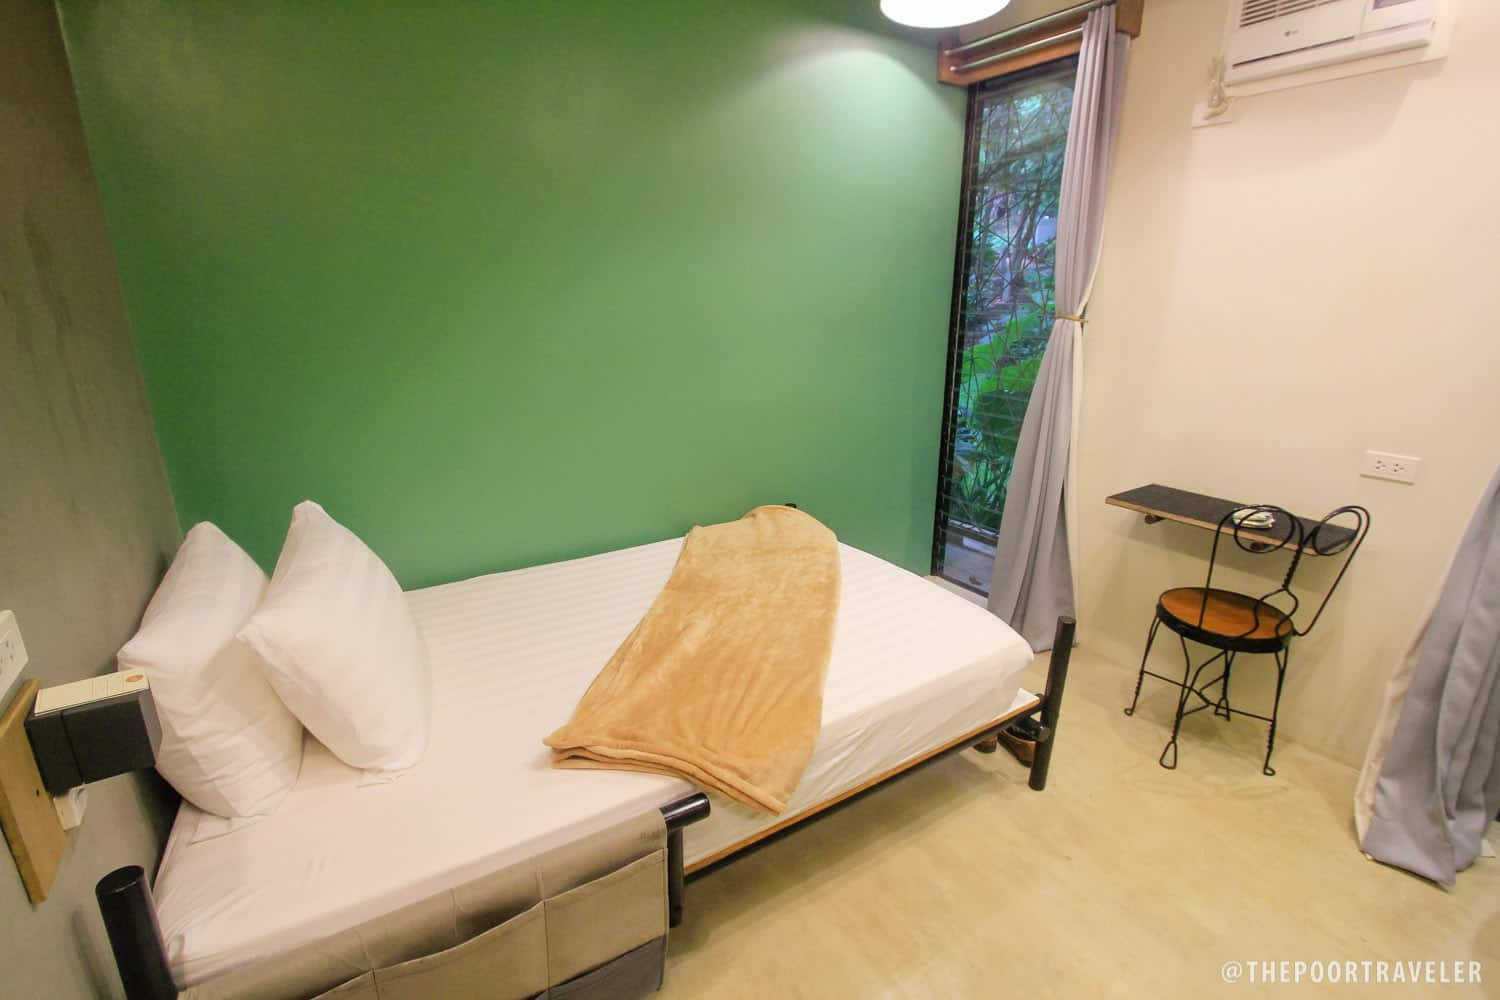 private room dating in dhaka Rent an apartment - your sweet home in uttara, dhaka on bangladesh's top real estate marketplace free of cost | your trusted real estate partner - lamudi.